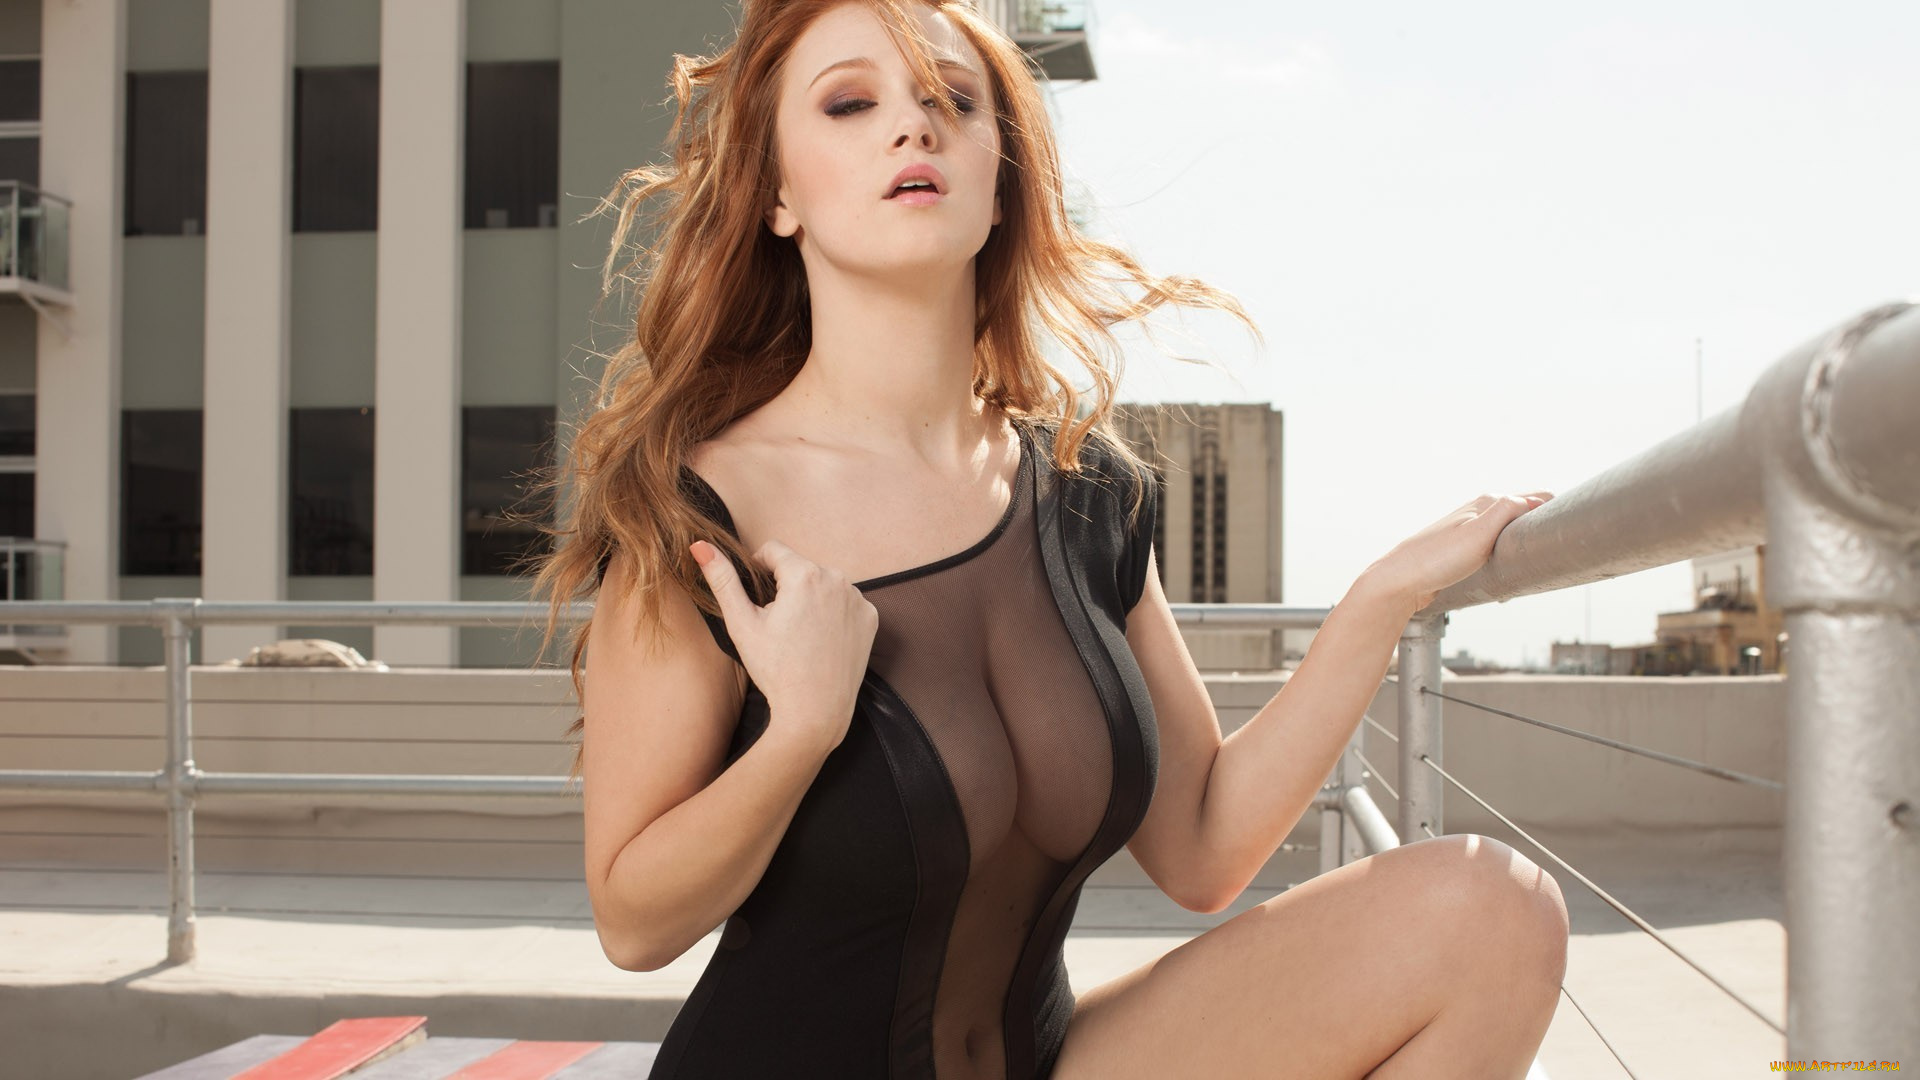 Lovely redhead babe Leanna Decker showcasing her voluptuous curves  1100365